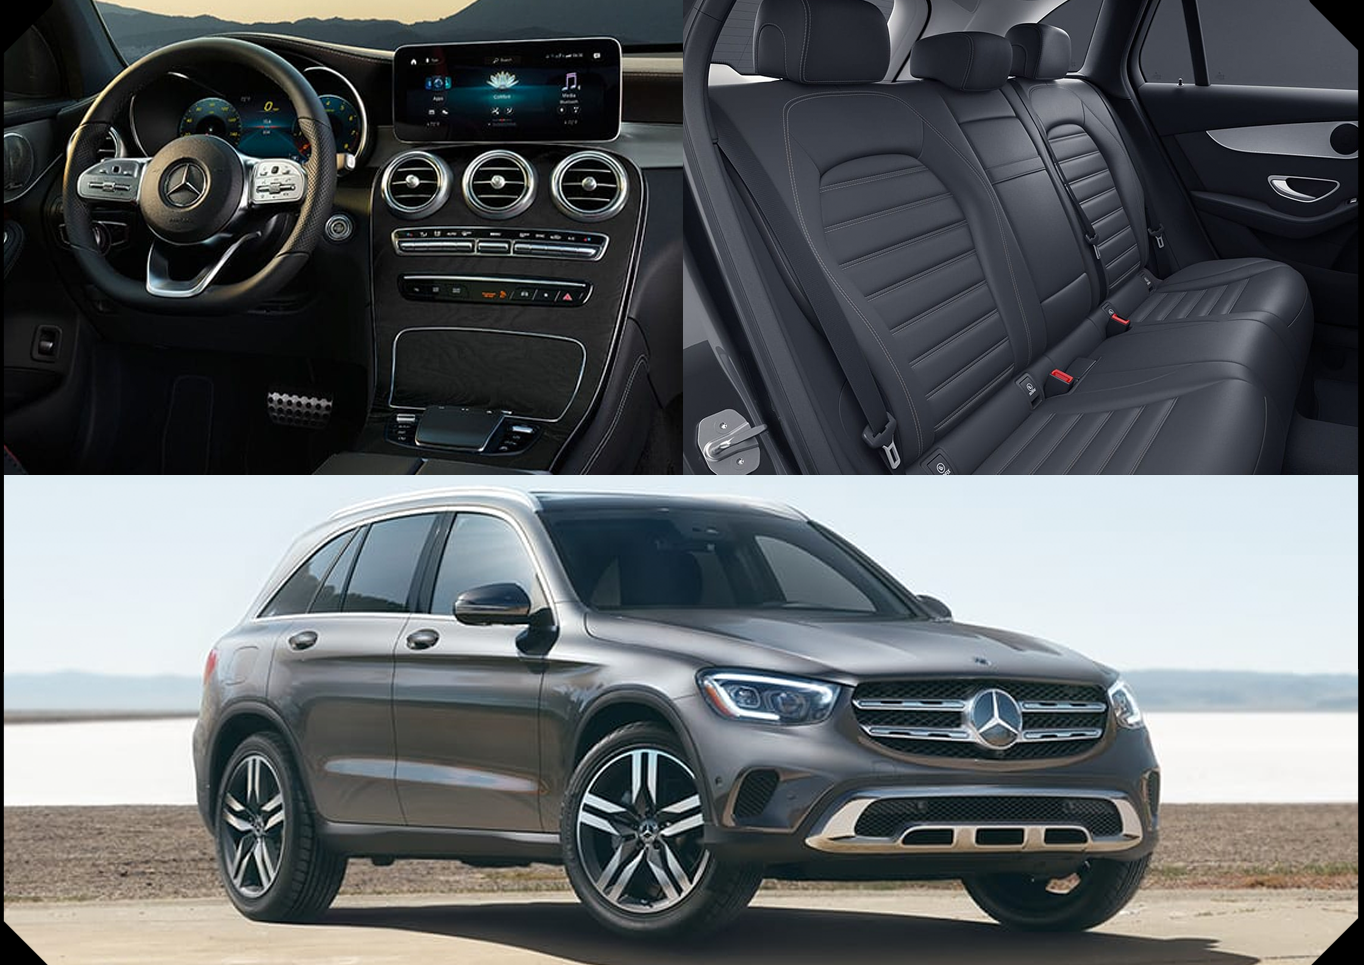 Chicago IL Which 2020 Mercedes-Benz SUV is For Me